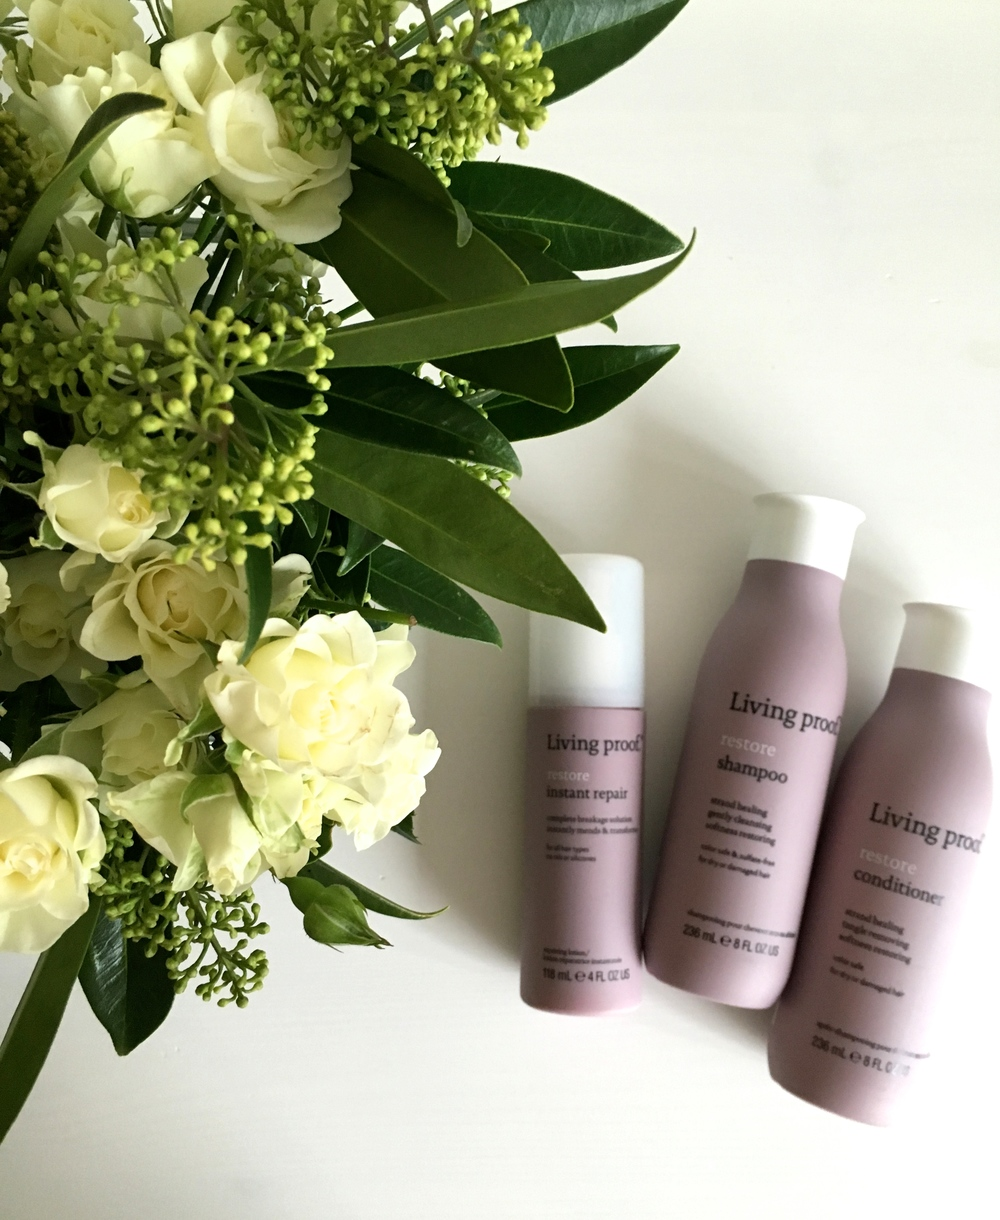 Living Proof Restore Shampoo, Conditioner & Instant Repair